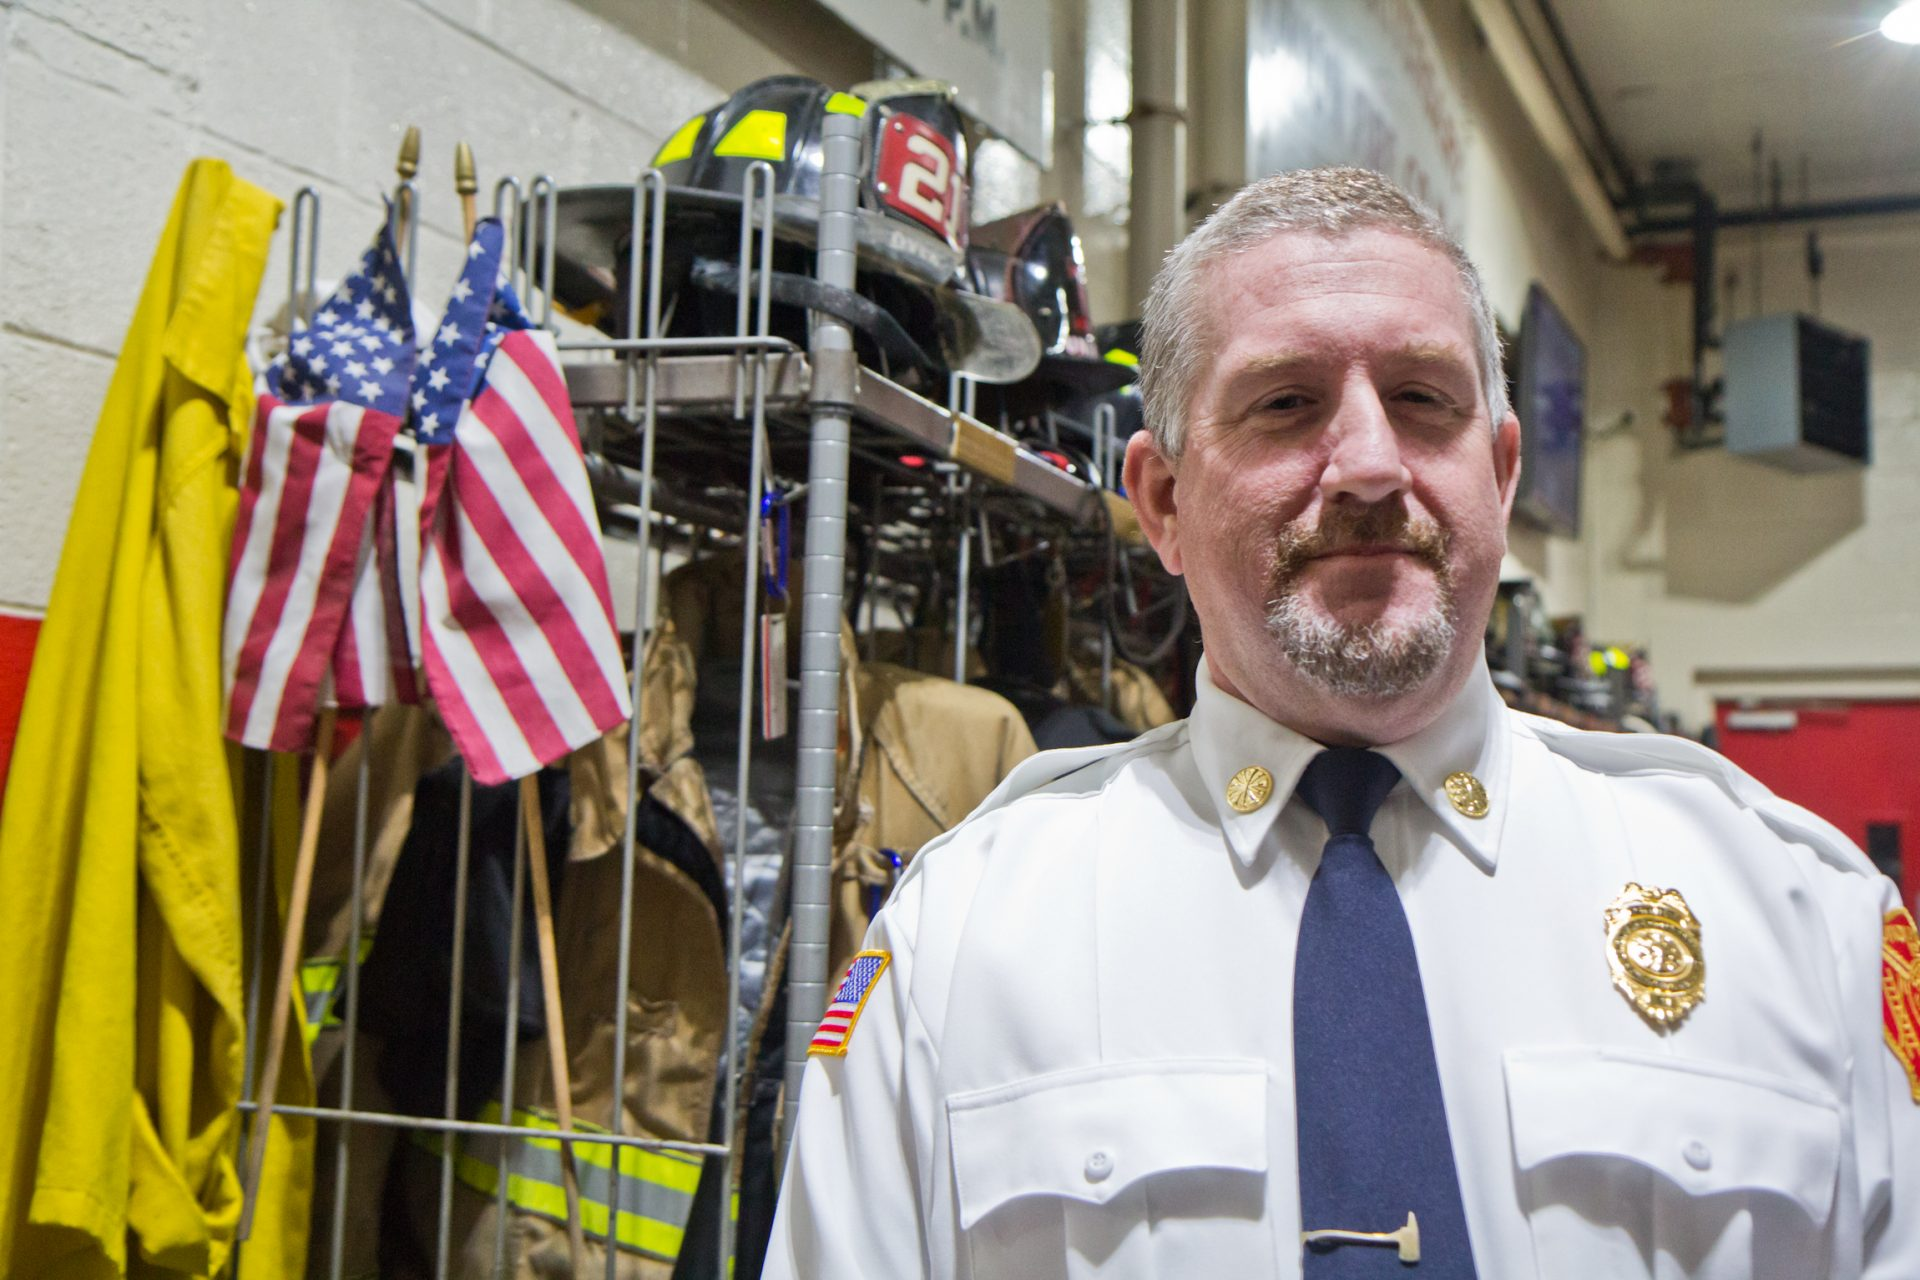 Shane Kinsey is the fire chief in Oxford, Pa.